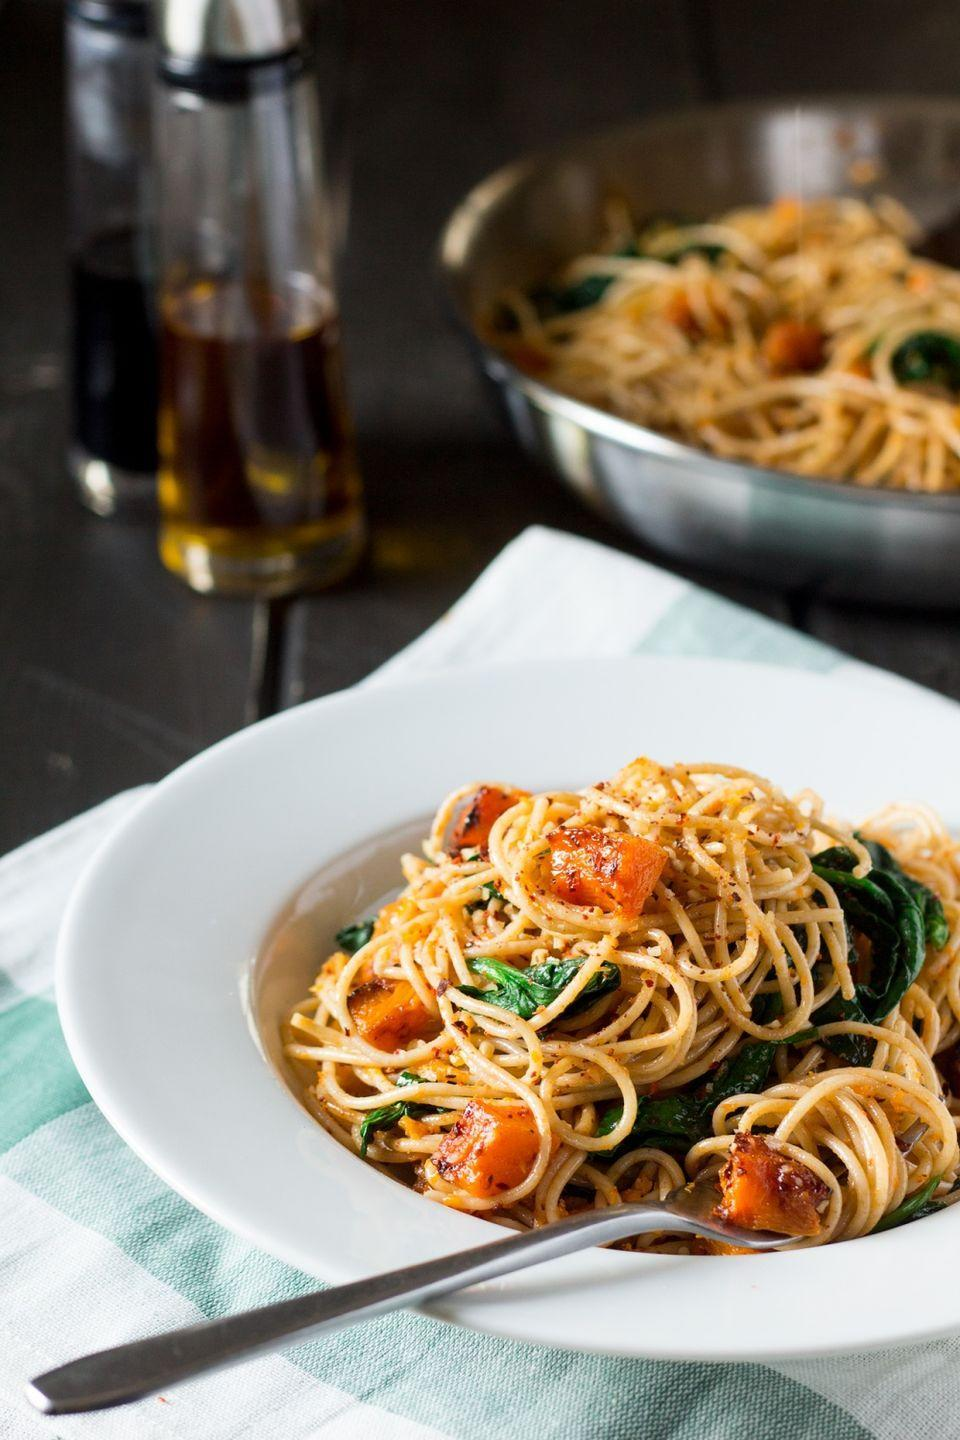 """<p>Bring bold flavors to your table in just 15 minutes with this spectacular spaghetti recipe of roasted pumpkin, spinach, and walnuts.</p><p><strong>Get the recipe at <a href=""""http://www.lazycatkitchen.com/pumpkin-spinach-and-walnut-spaghetti/"""" rel=""""nofollow noopener"""" target=""""_blank"""" data-ylk=""""slk:Lazy Cat Kitchen"""" class=""""link rapid-noclick-resp"""">Lazy Cat Kitchen</a>.</strong></p>"""